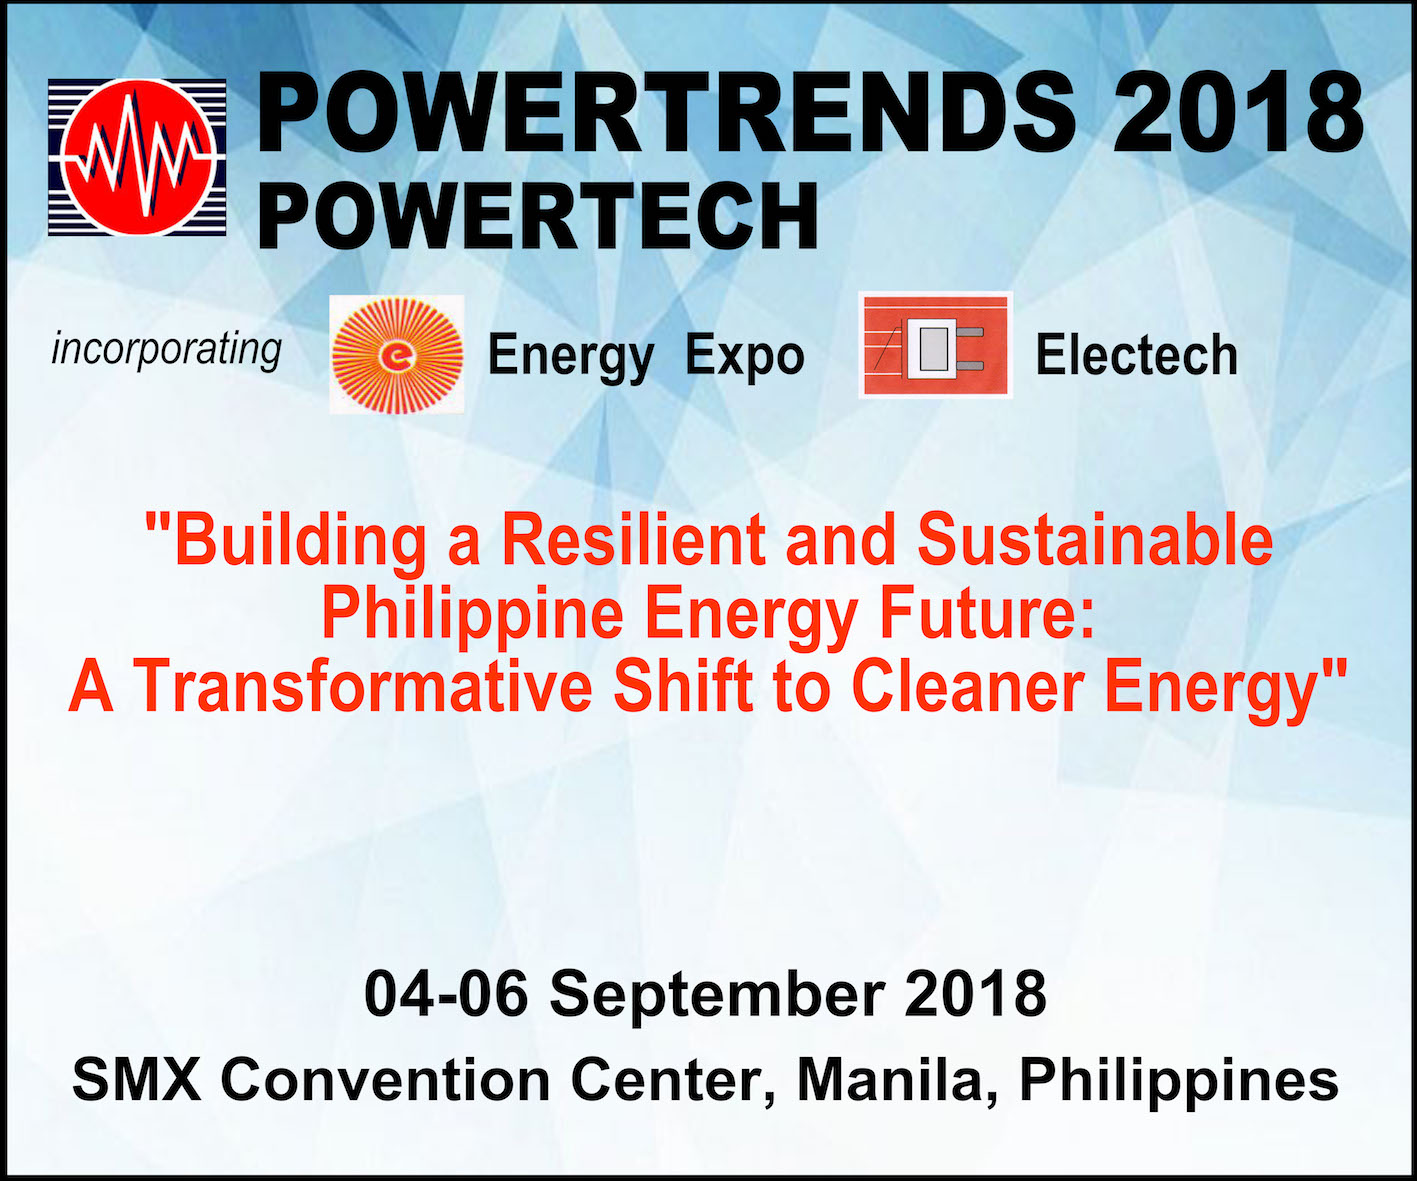 PowerTrends 2018 conference